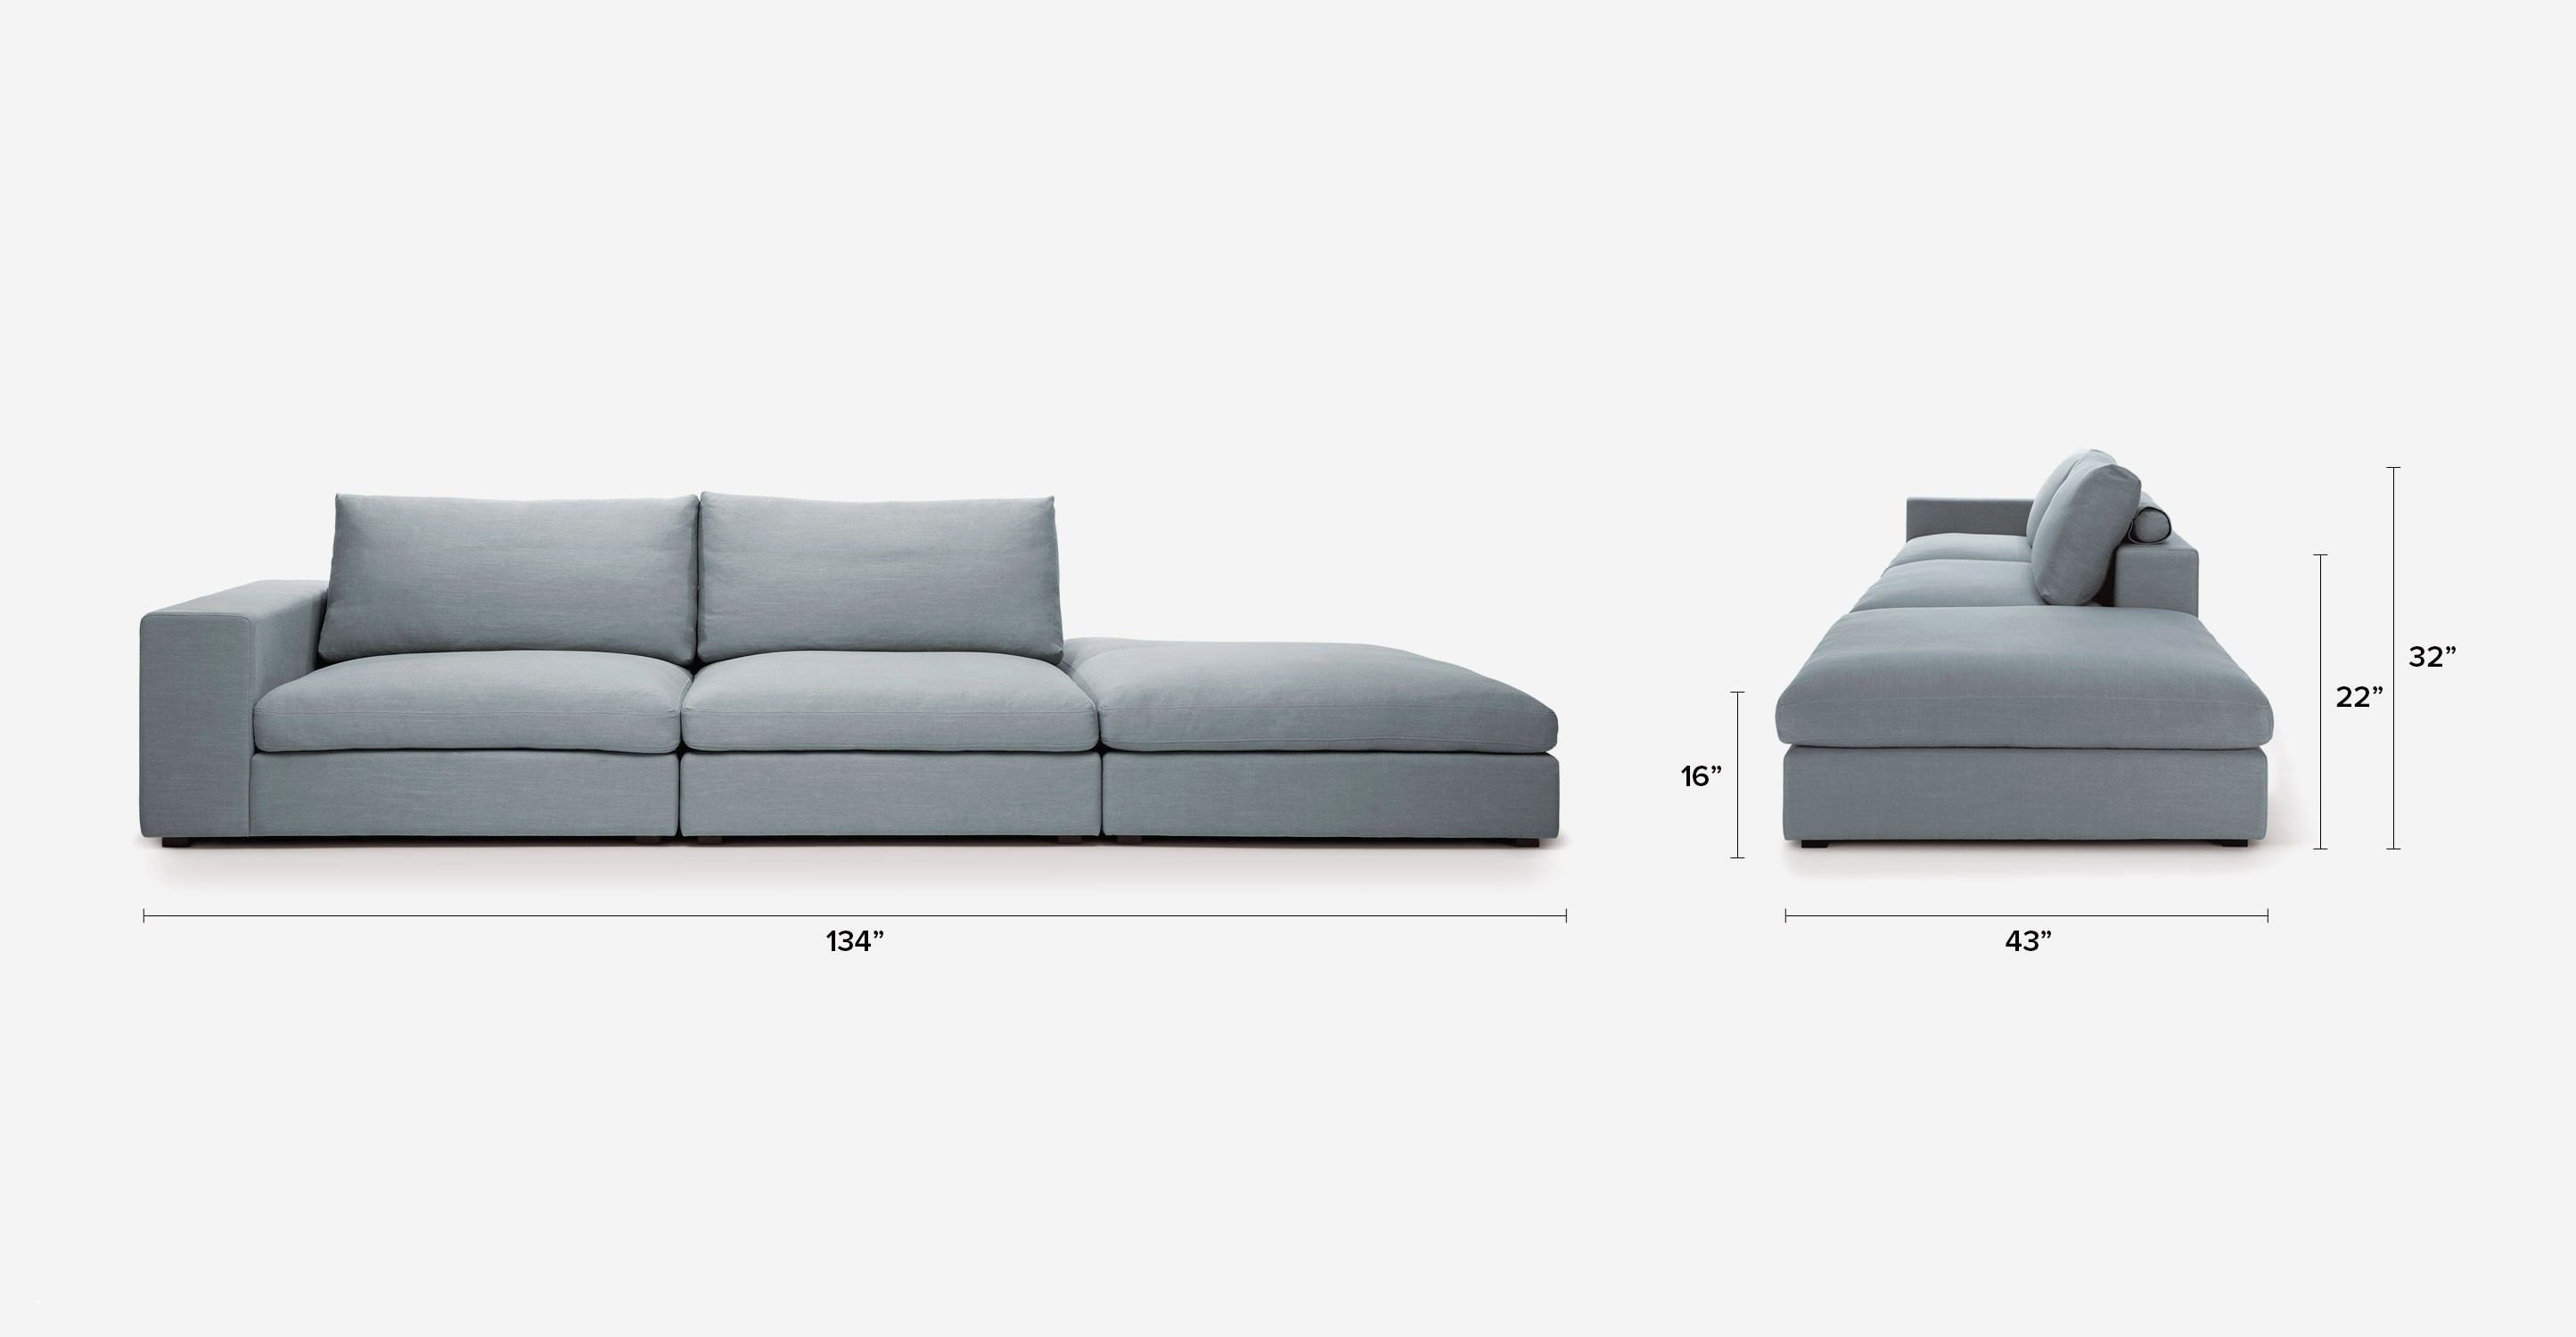 24 Elegante Intex Queen Sleeper Sofa Walmart Sofa Kissen Sofa Schlafsofa Gunstig